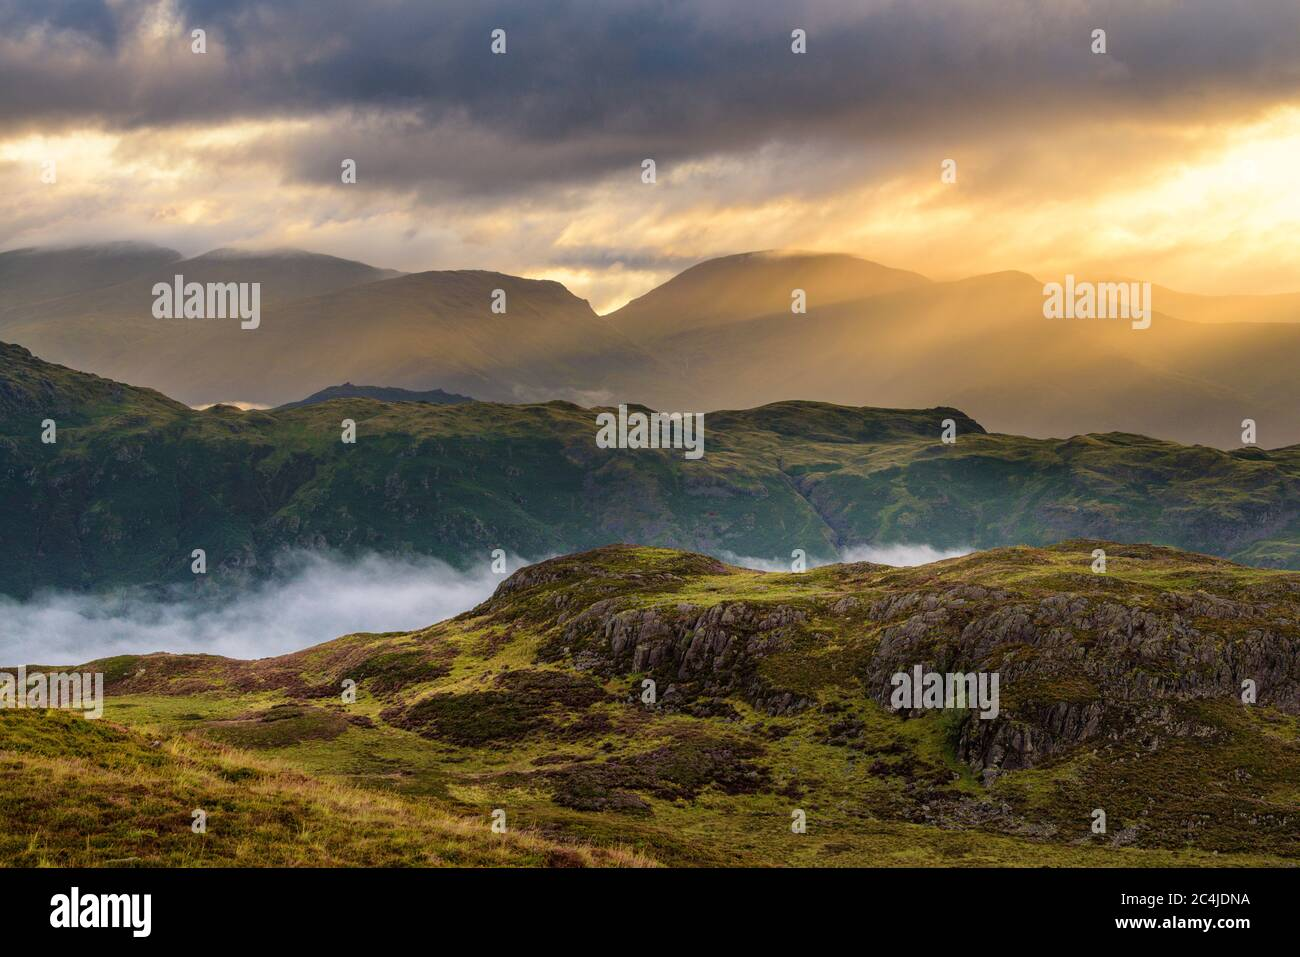 Beautiful Golden Rays Of Sunlight Breaking Through Clouds On A Misty Morning In The English Lake District. Stock Photo